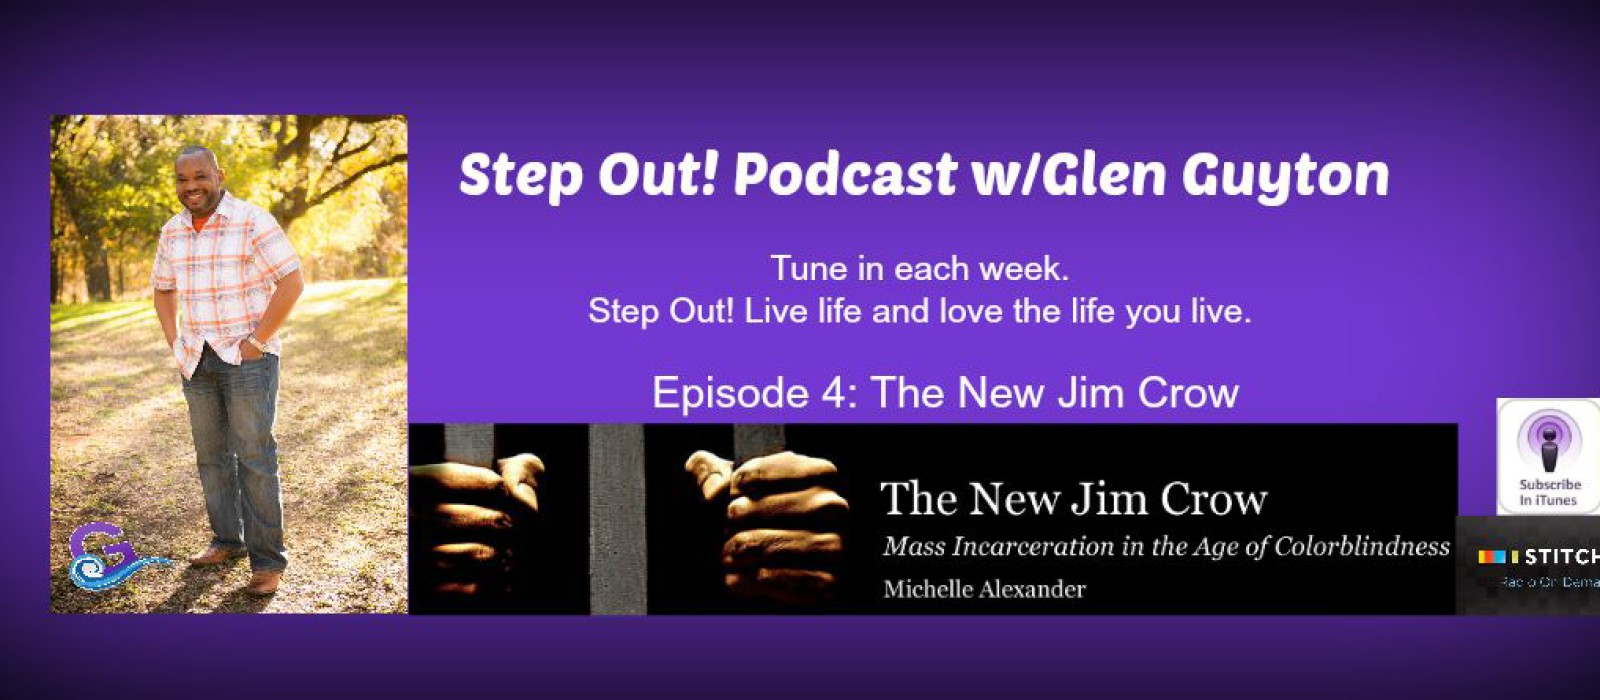 Episode 4: The New Jim Crow